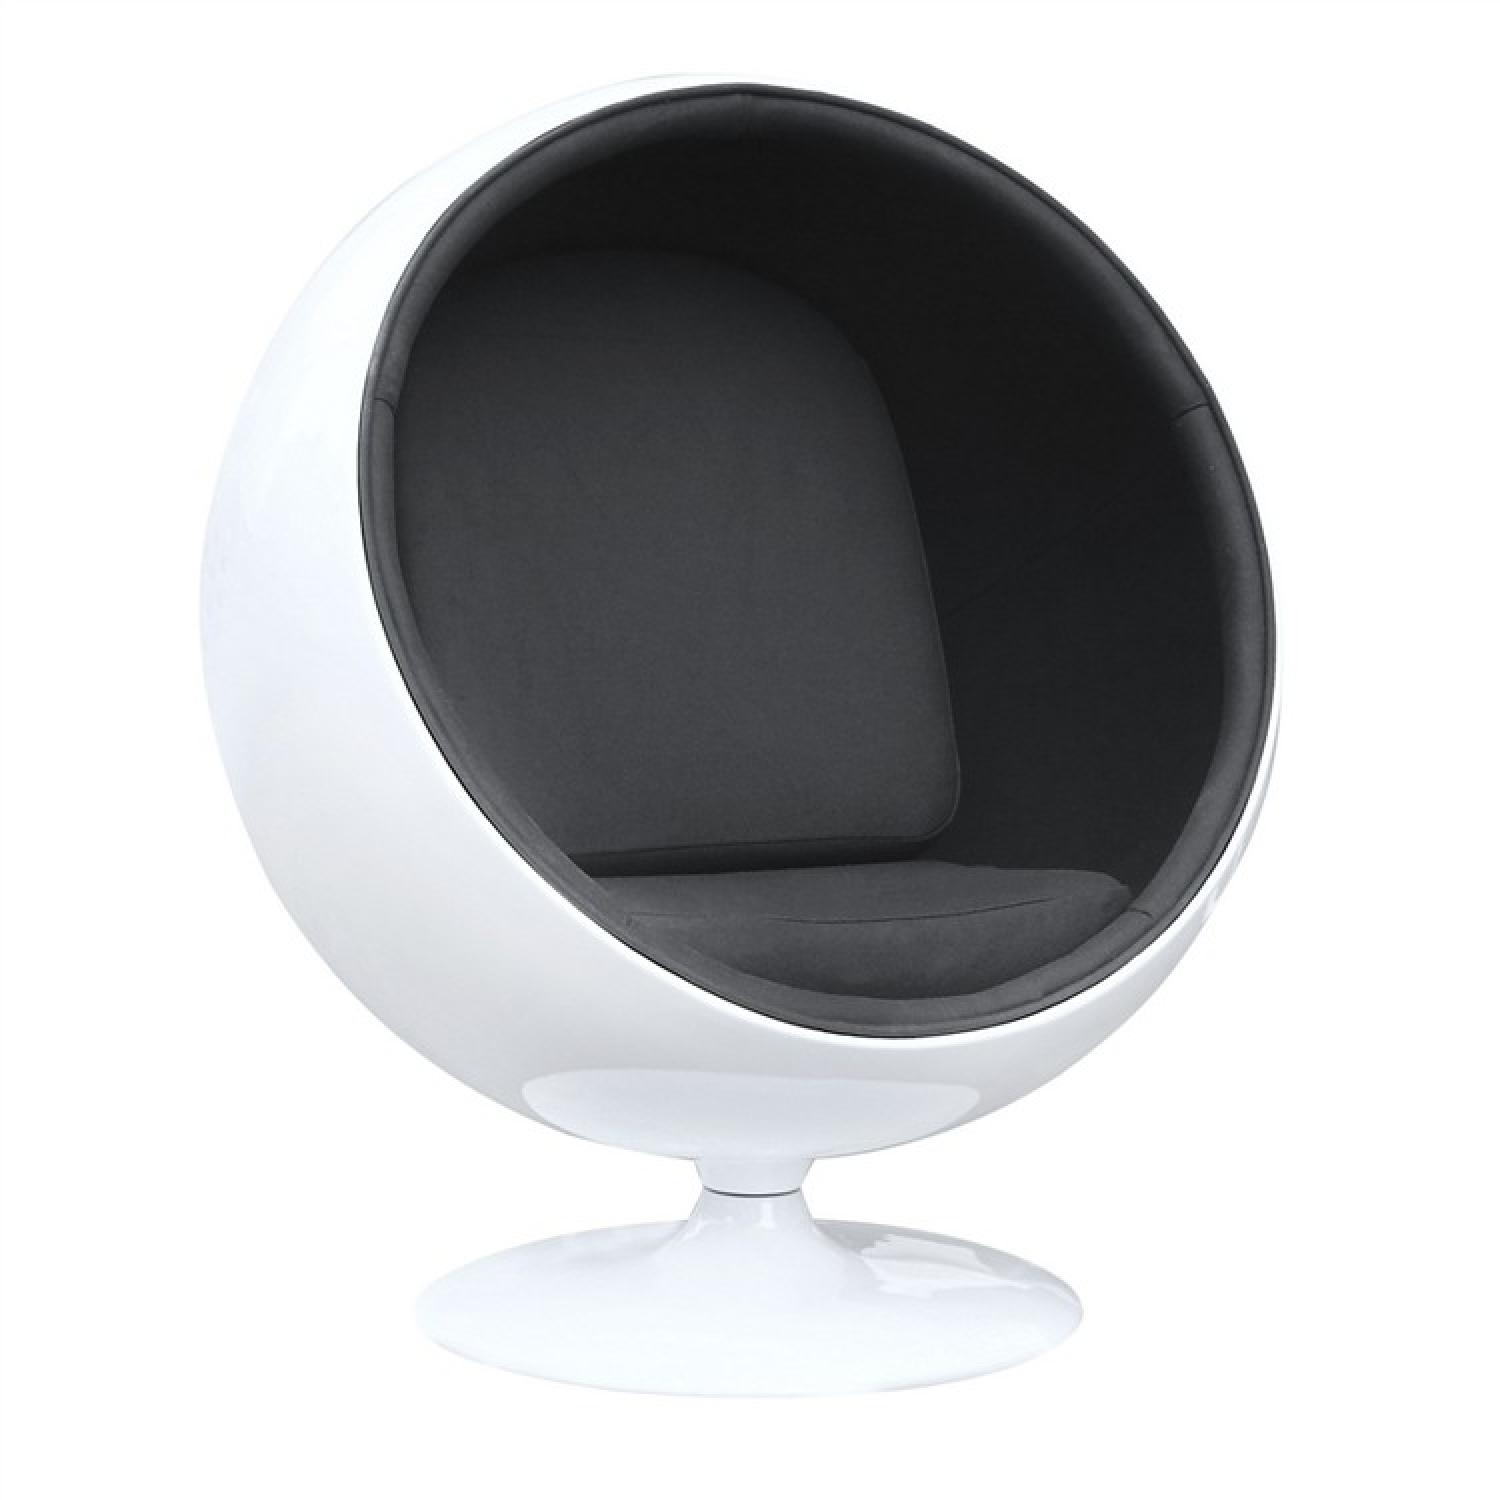 Retro Style Ball Chair in White Fiberglass w/ Black Fabric Interior